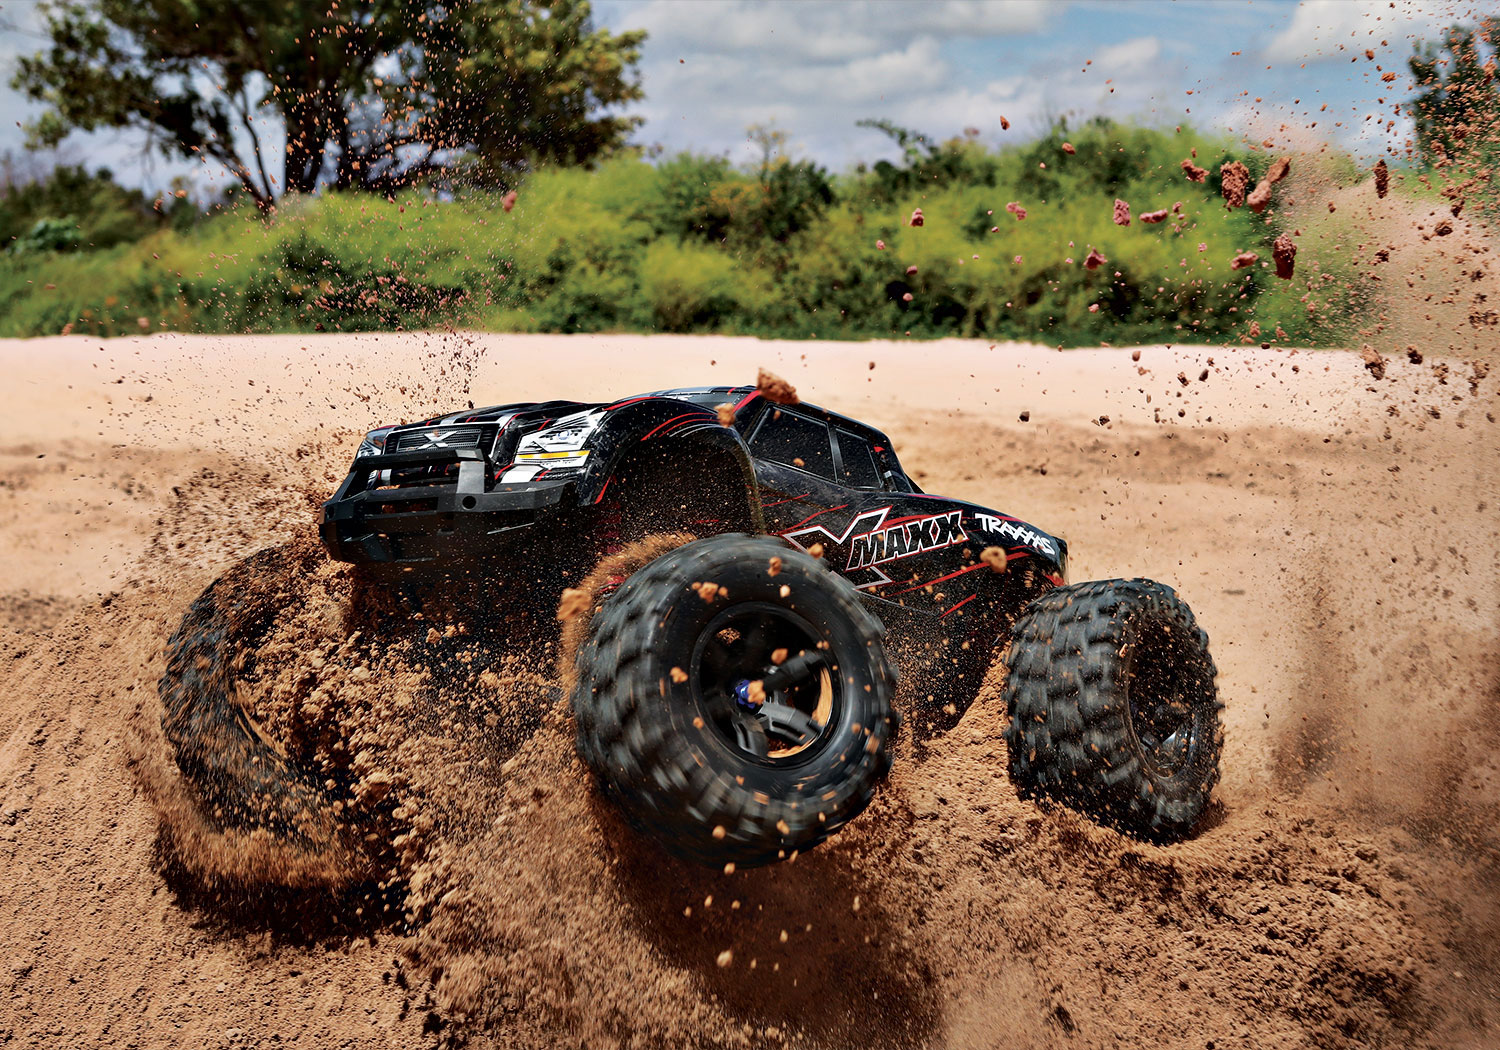 Charge up with Traxxas for extreme performance!